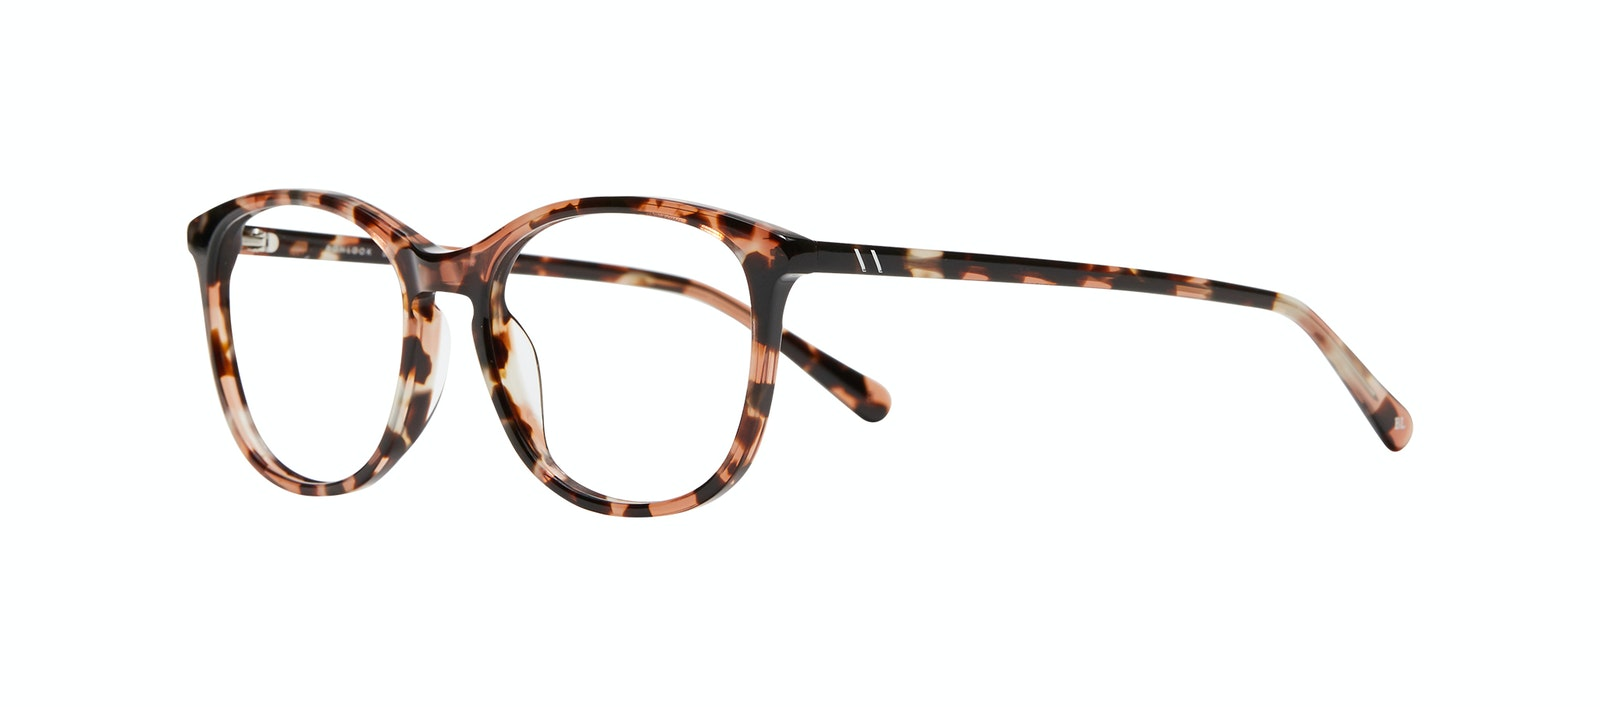 Affordable Fashion Glasses Rectangle Square Round Eyeglasses Women Nadine M Pink Tortoise Tilt